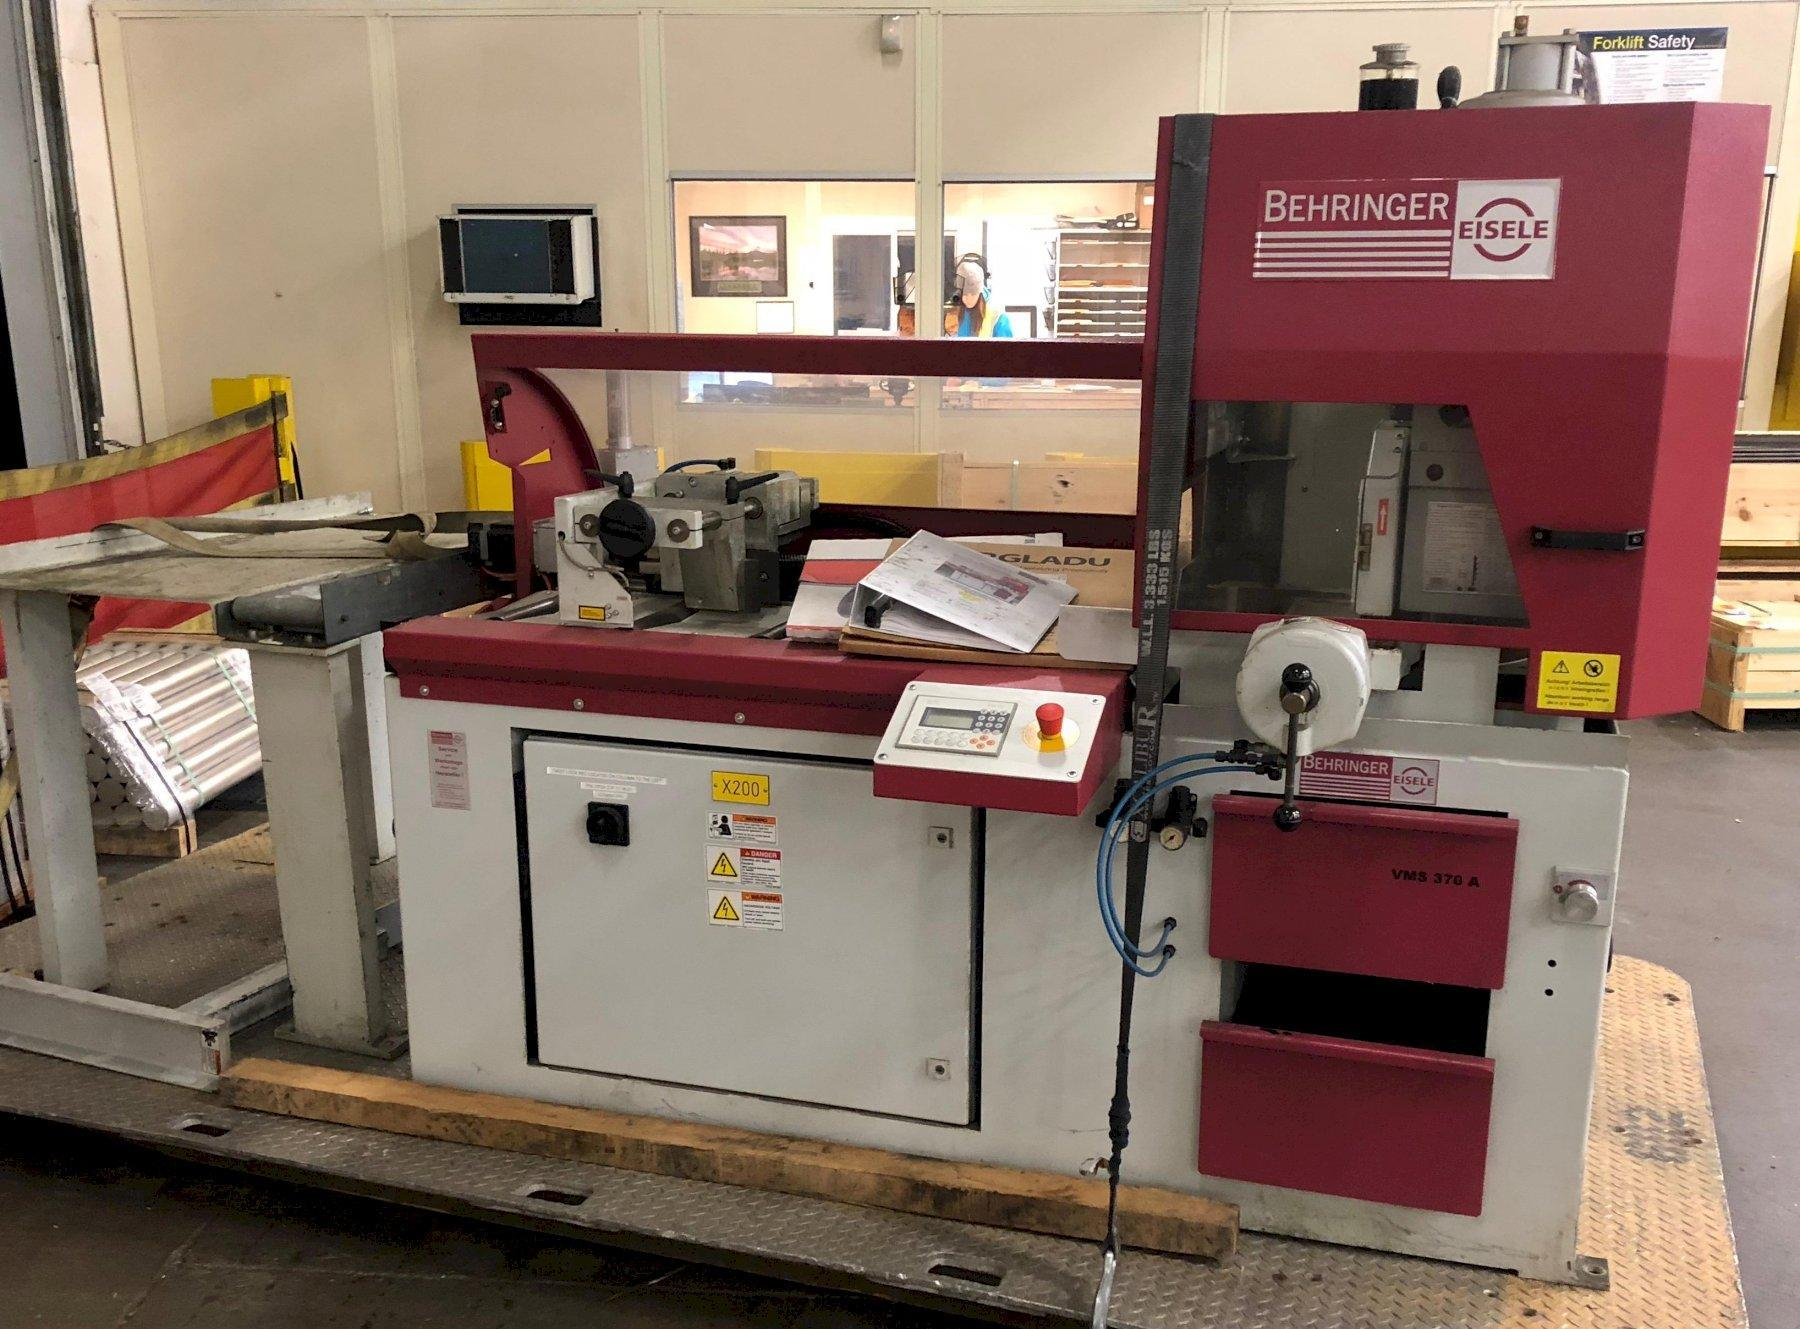 "7.8"" X 3.9"" BEHRINGER MODEL #VMS-370A CNC AUTOMATIC MITER CIRCULAR COLD SAW, NEW 2015: STOCK 12139"